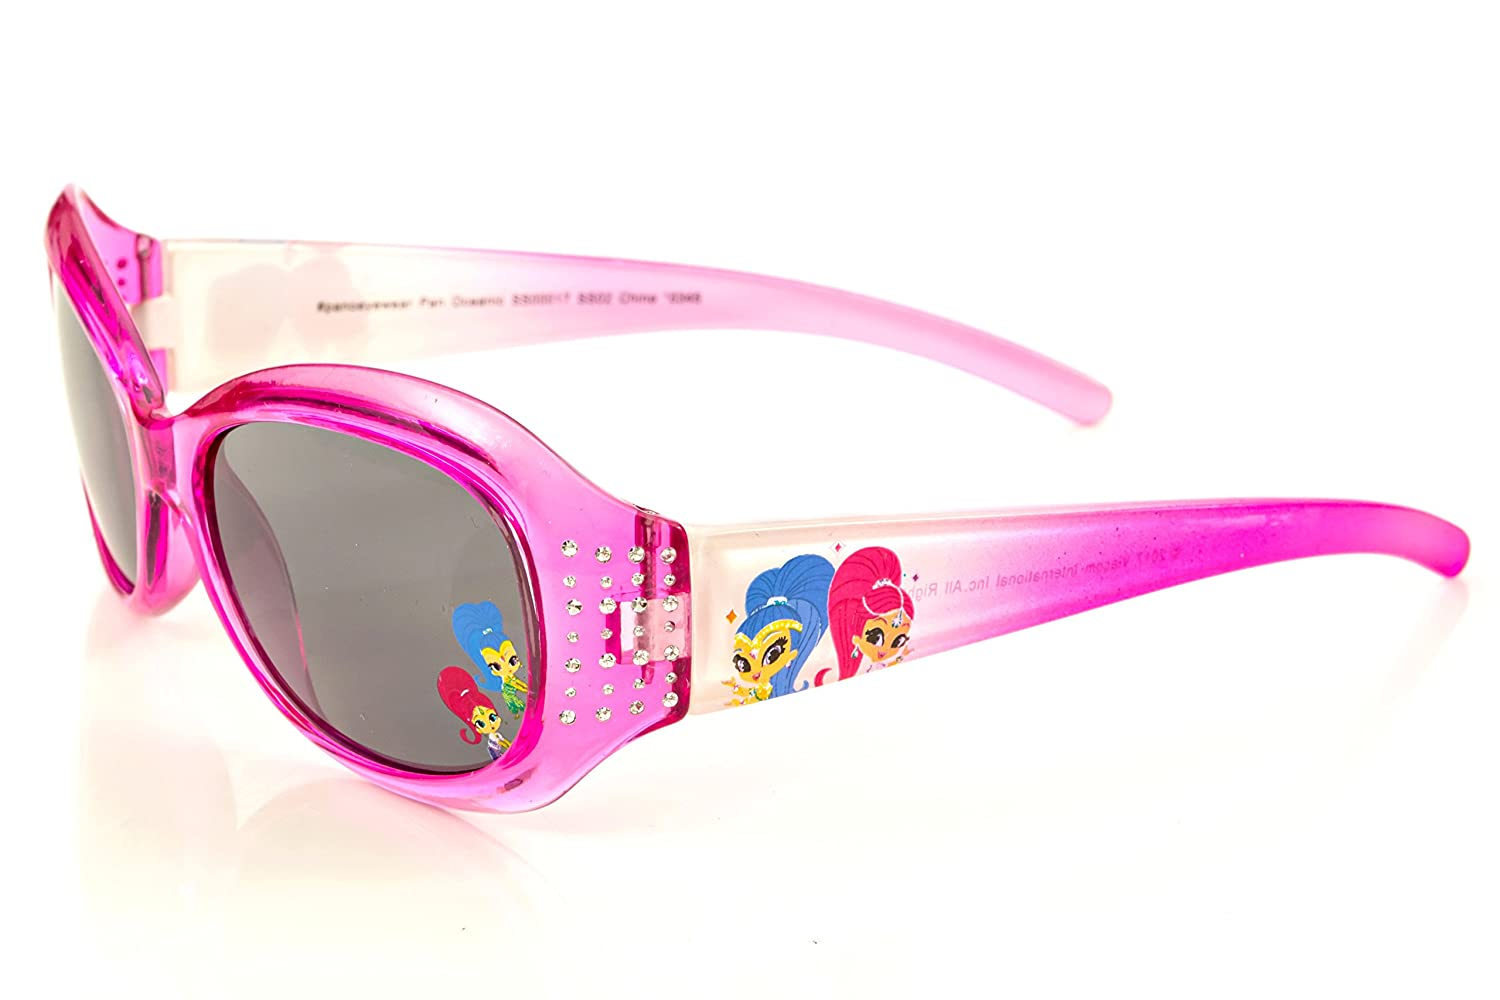 Nickelodeon Shimmer and Shine Girl's Sunglasses in Pink with Studs Pan Oceanic Eyewear LTD